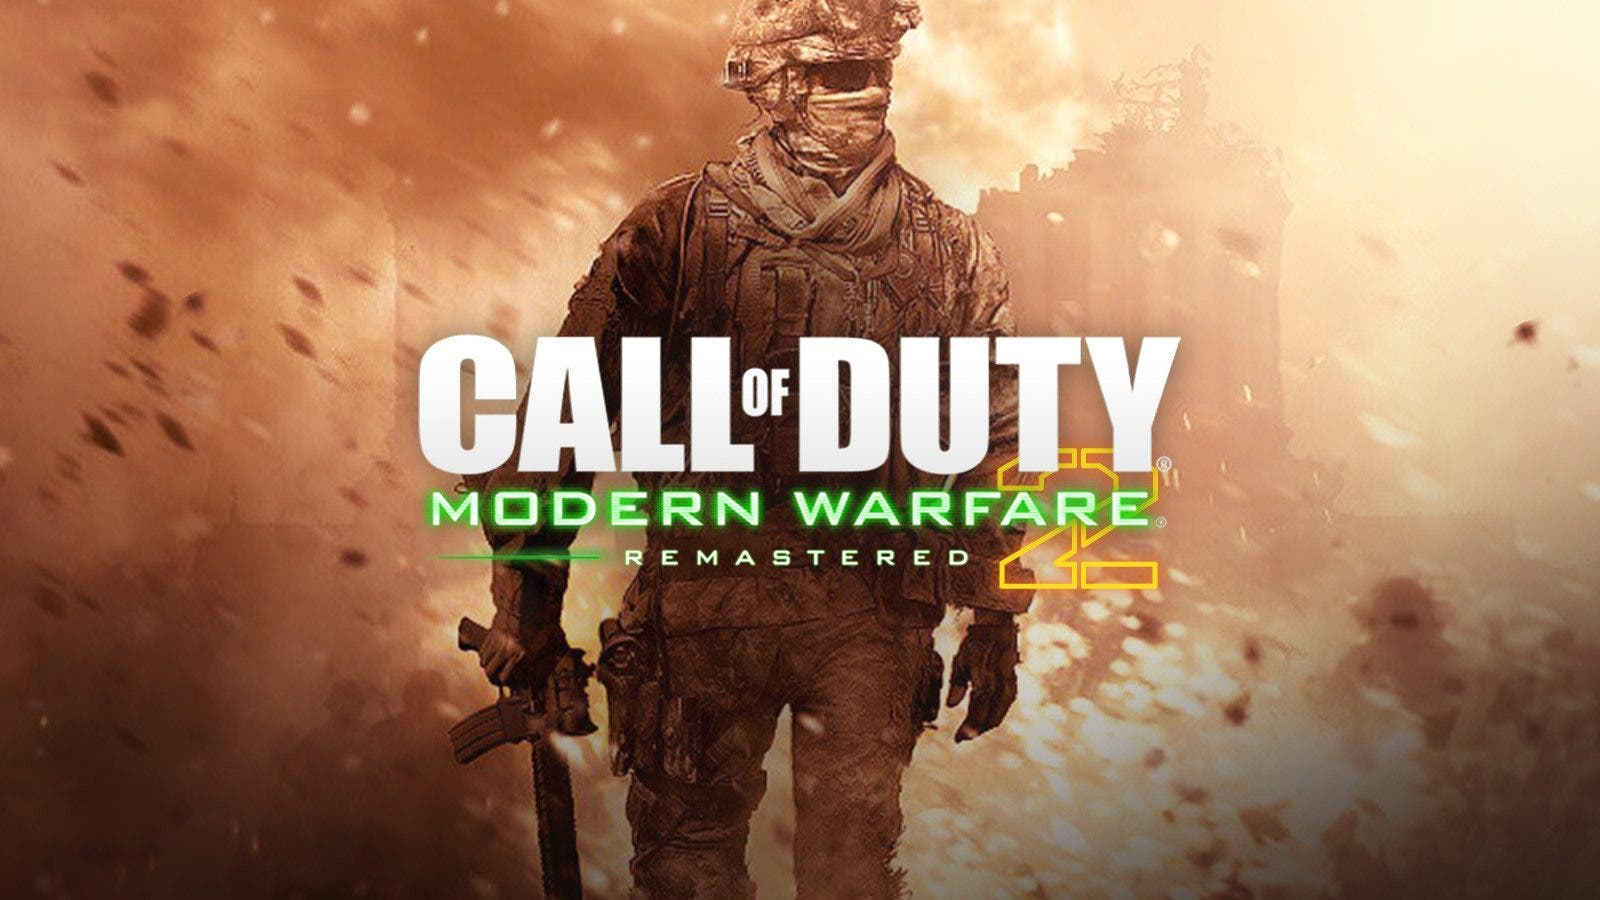 Call of Duty Modern Warfare 2 Remastered llegaría la próxima semana